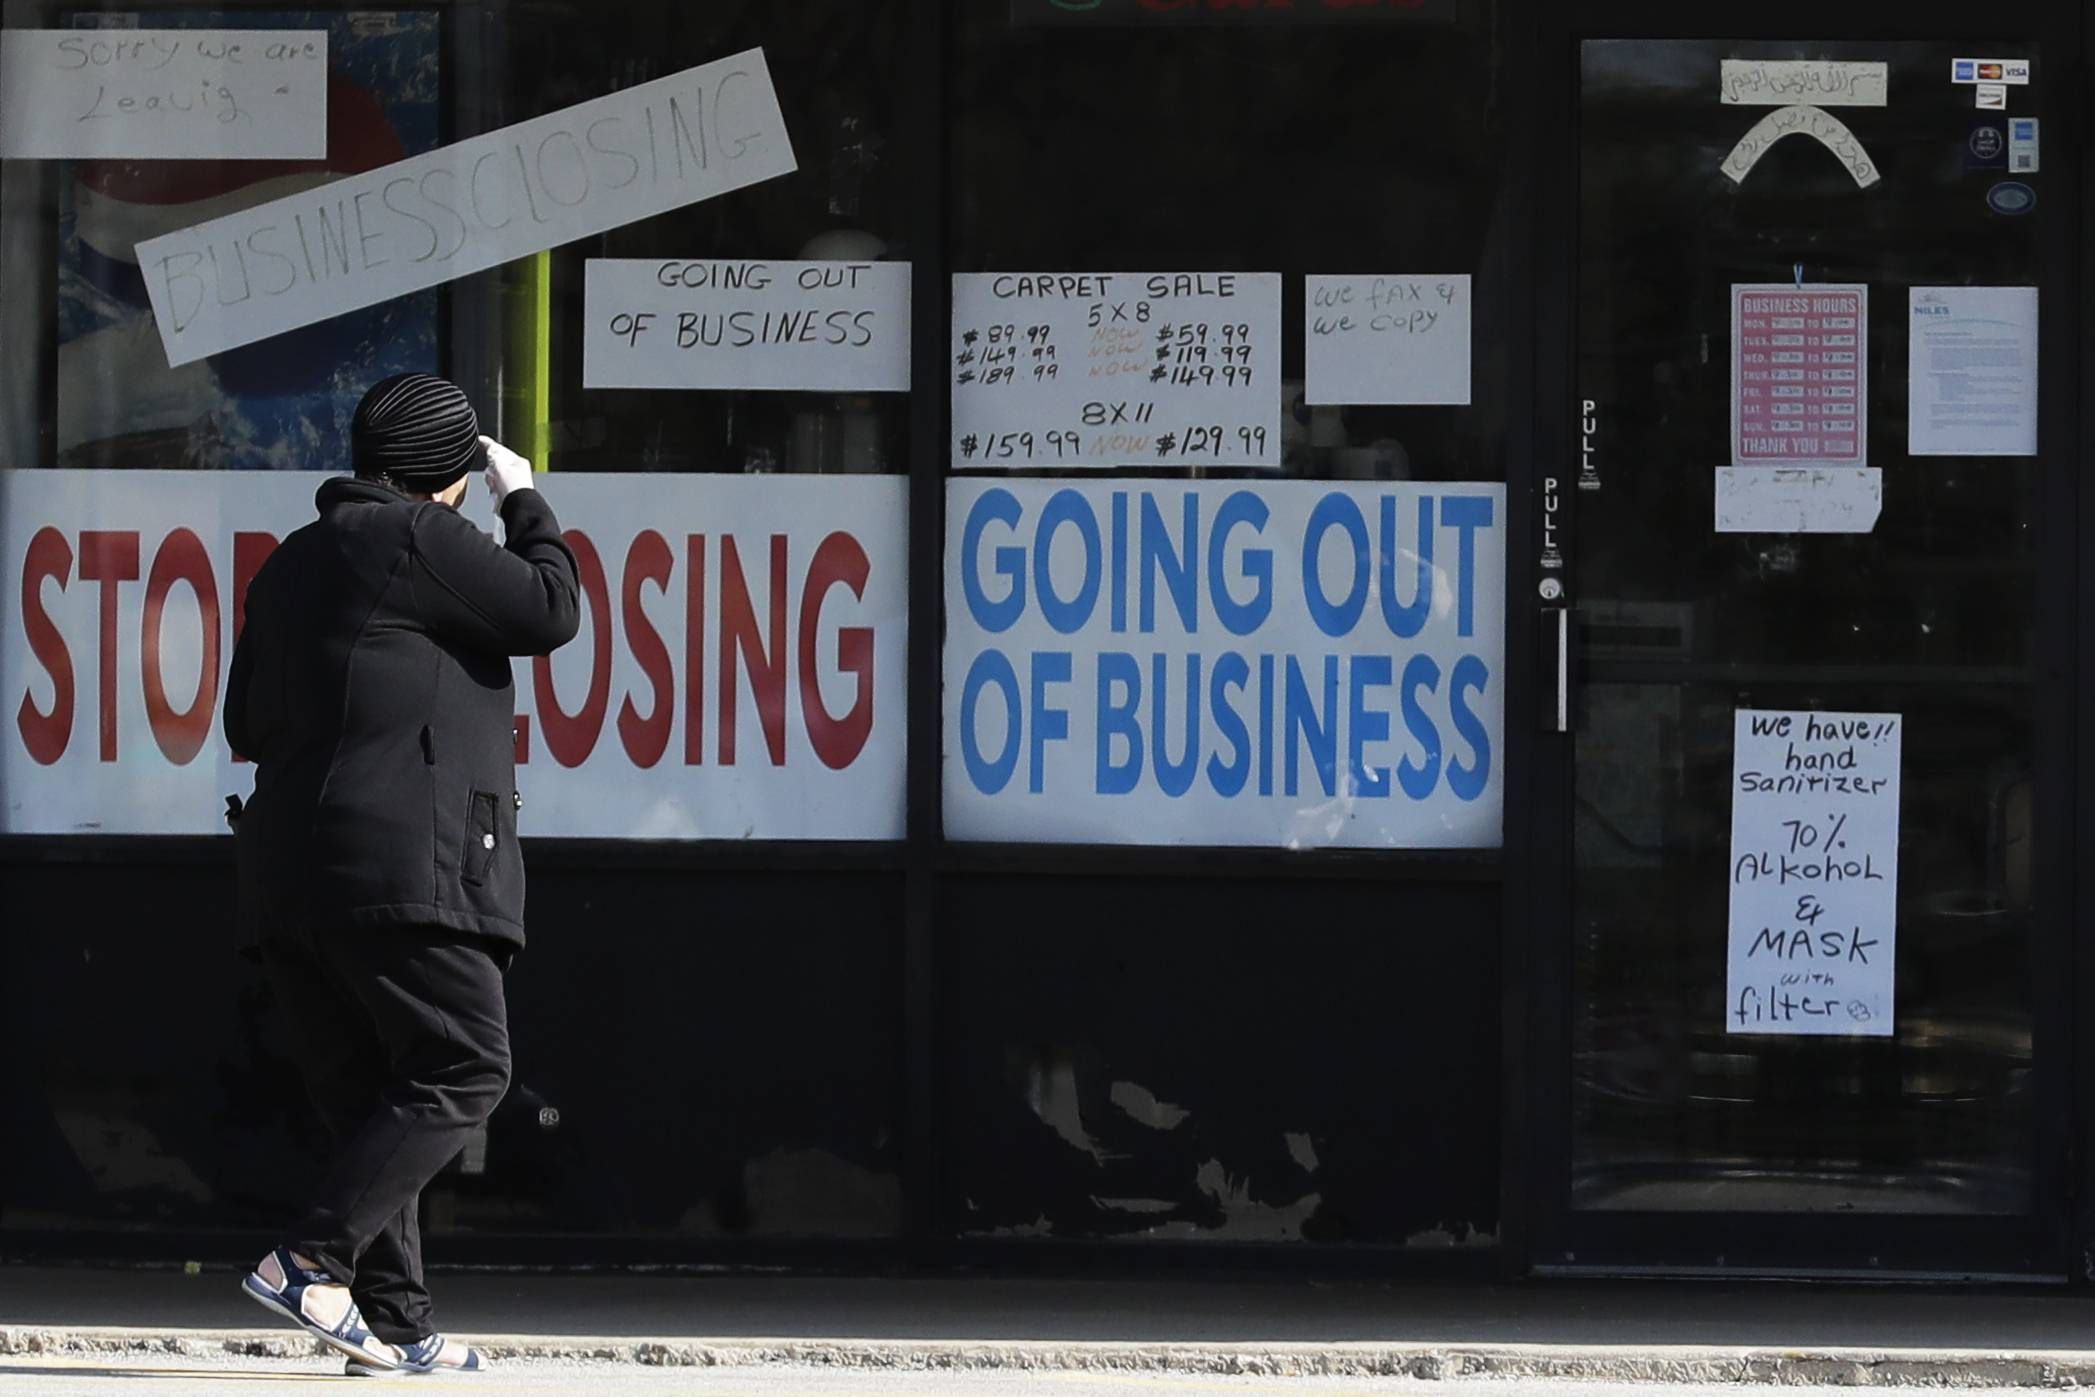 A women looks at signs on a store in Niles, Illinois, on May 13. From leisure to hospitality to retail, entire industries in which women make up a greater share of the workforce have been brought to a halt by the pandemic as more than 20 million Americans lost their jobs in April alone. | AP